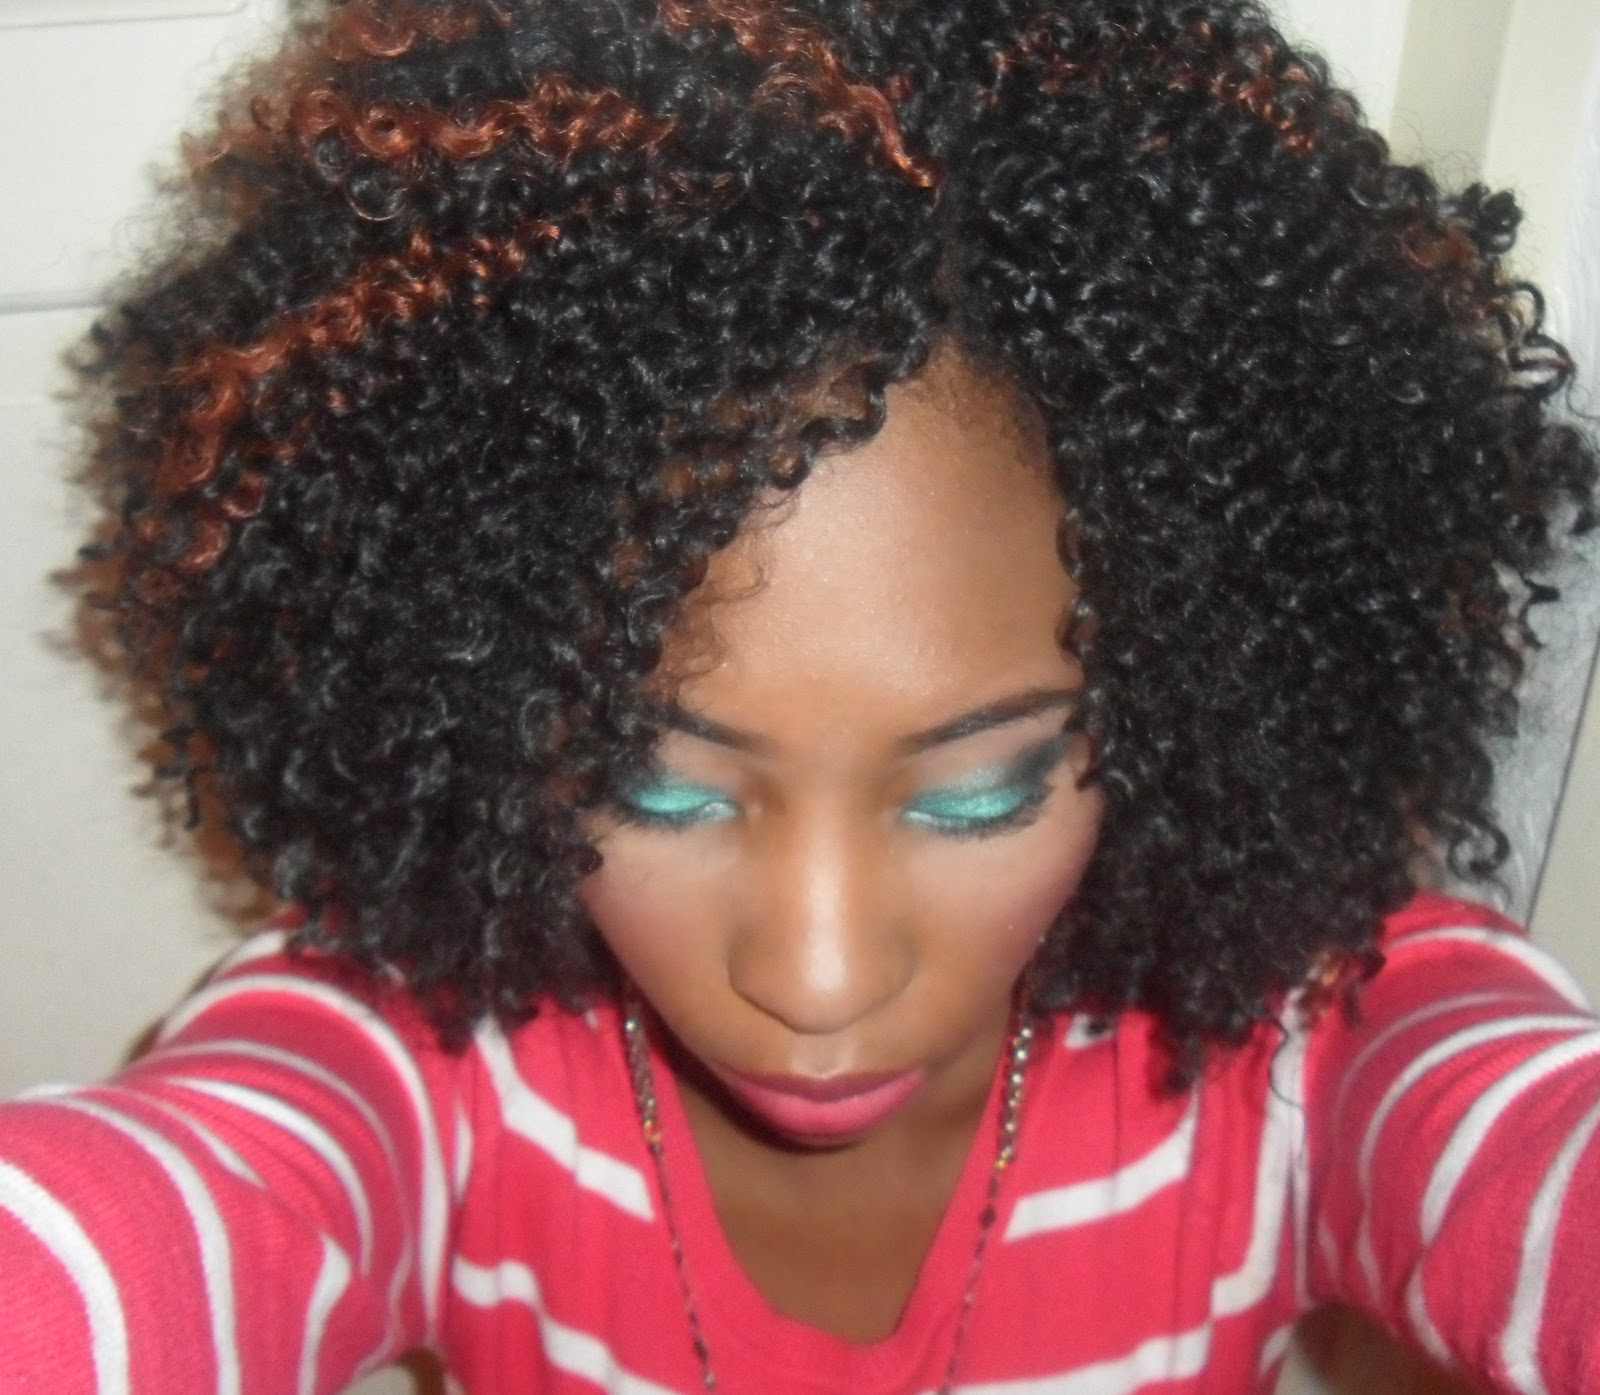 Crochet Hair Upkeep : If you are interested in learning how to do crochet braids, here is a ...